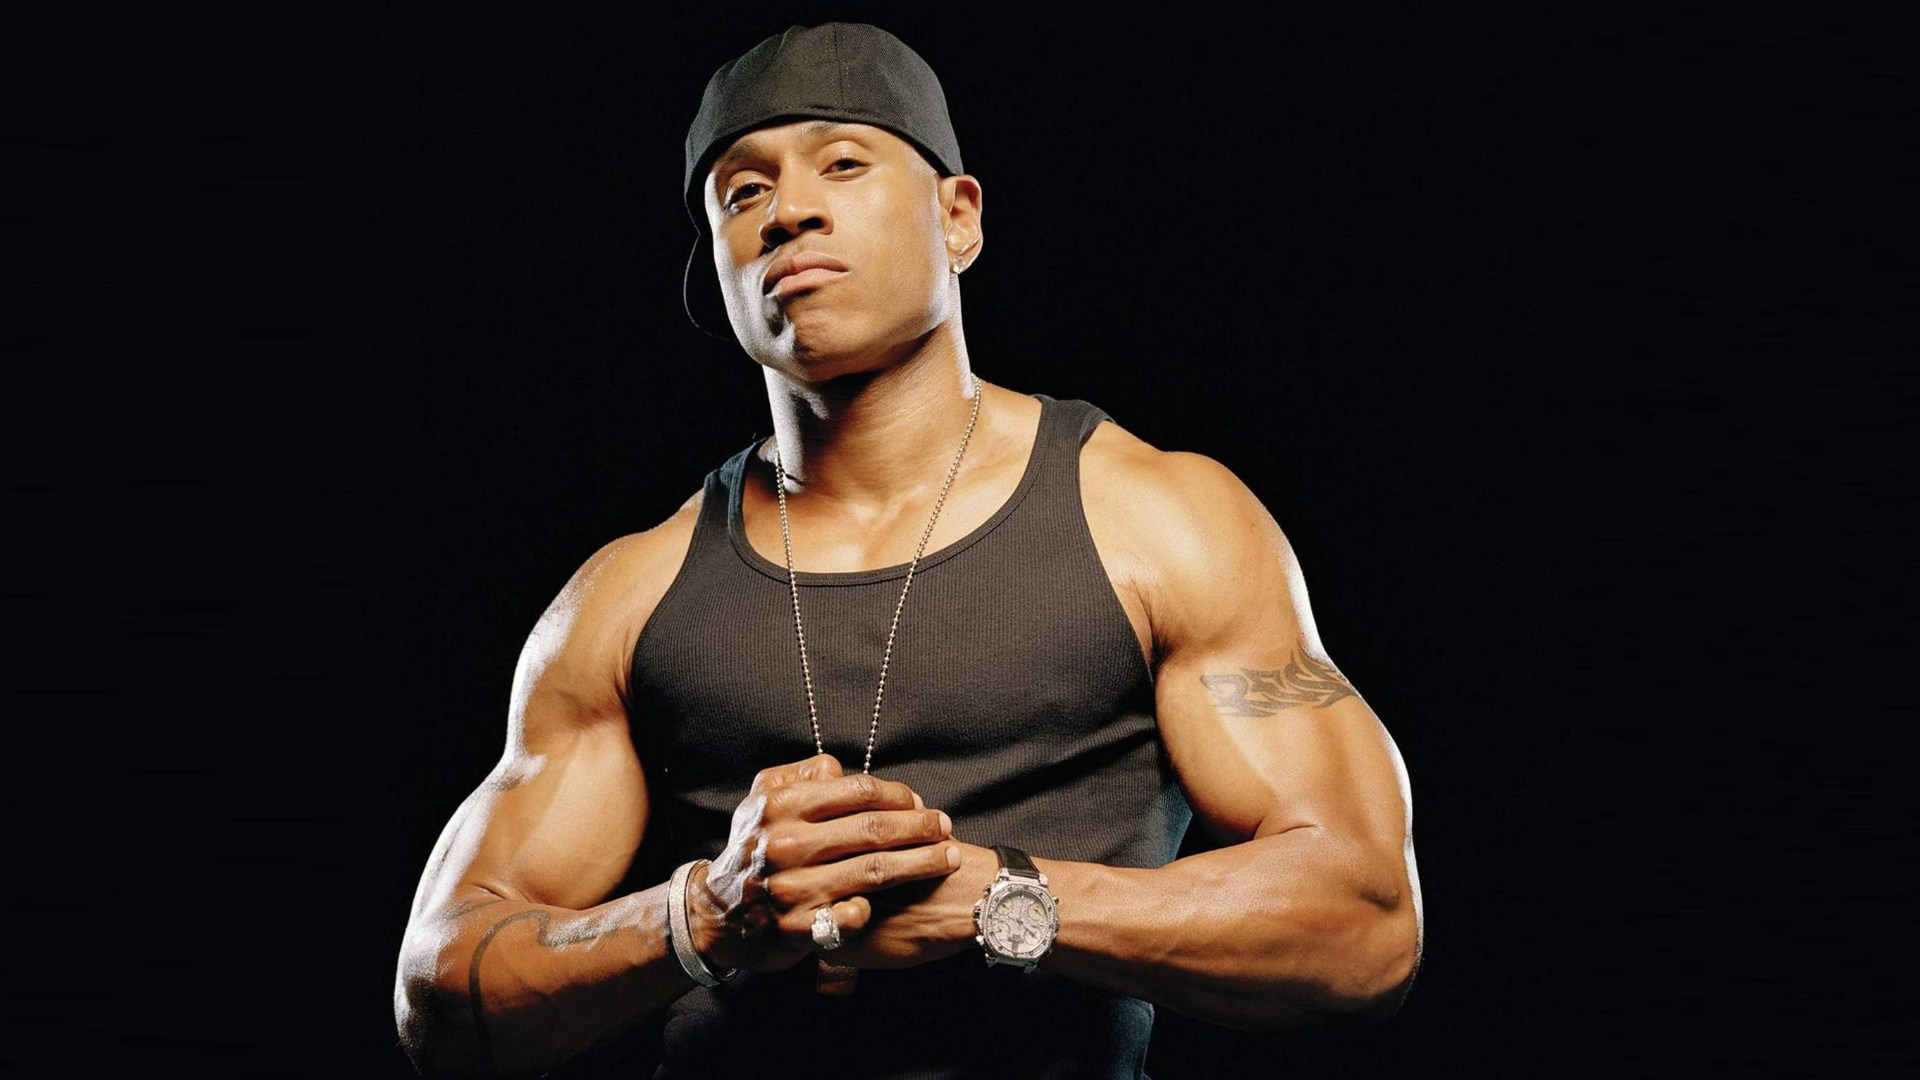 4 Ll Cool J Hd Wallpapers Backgrounds